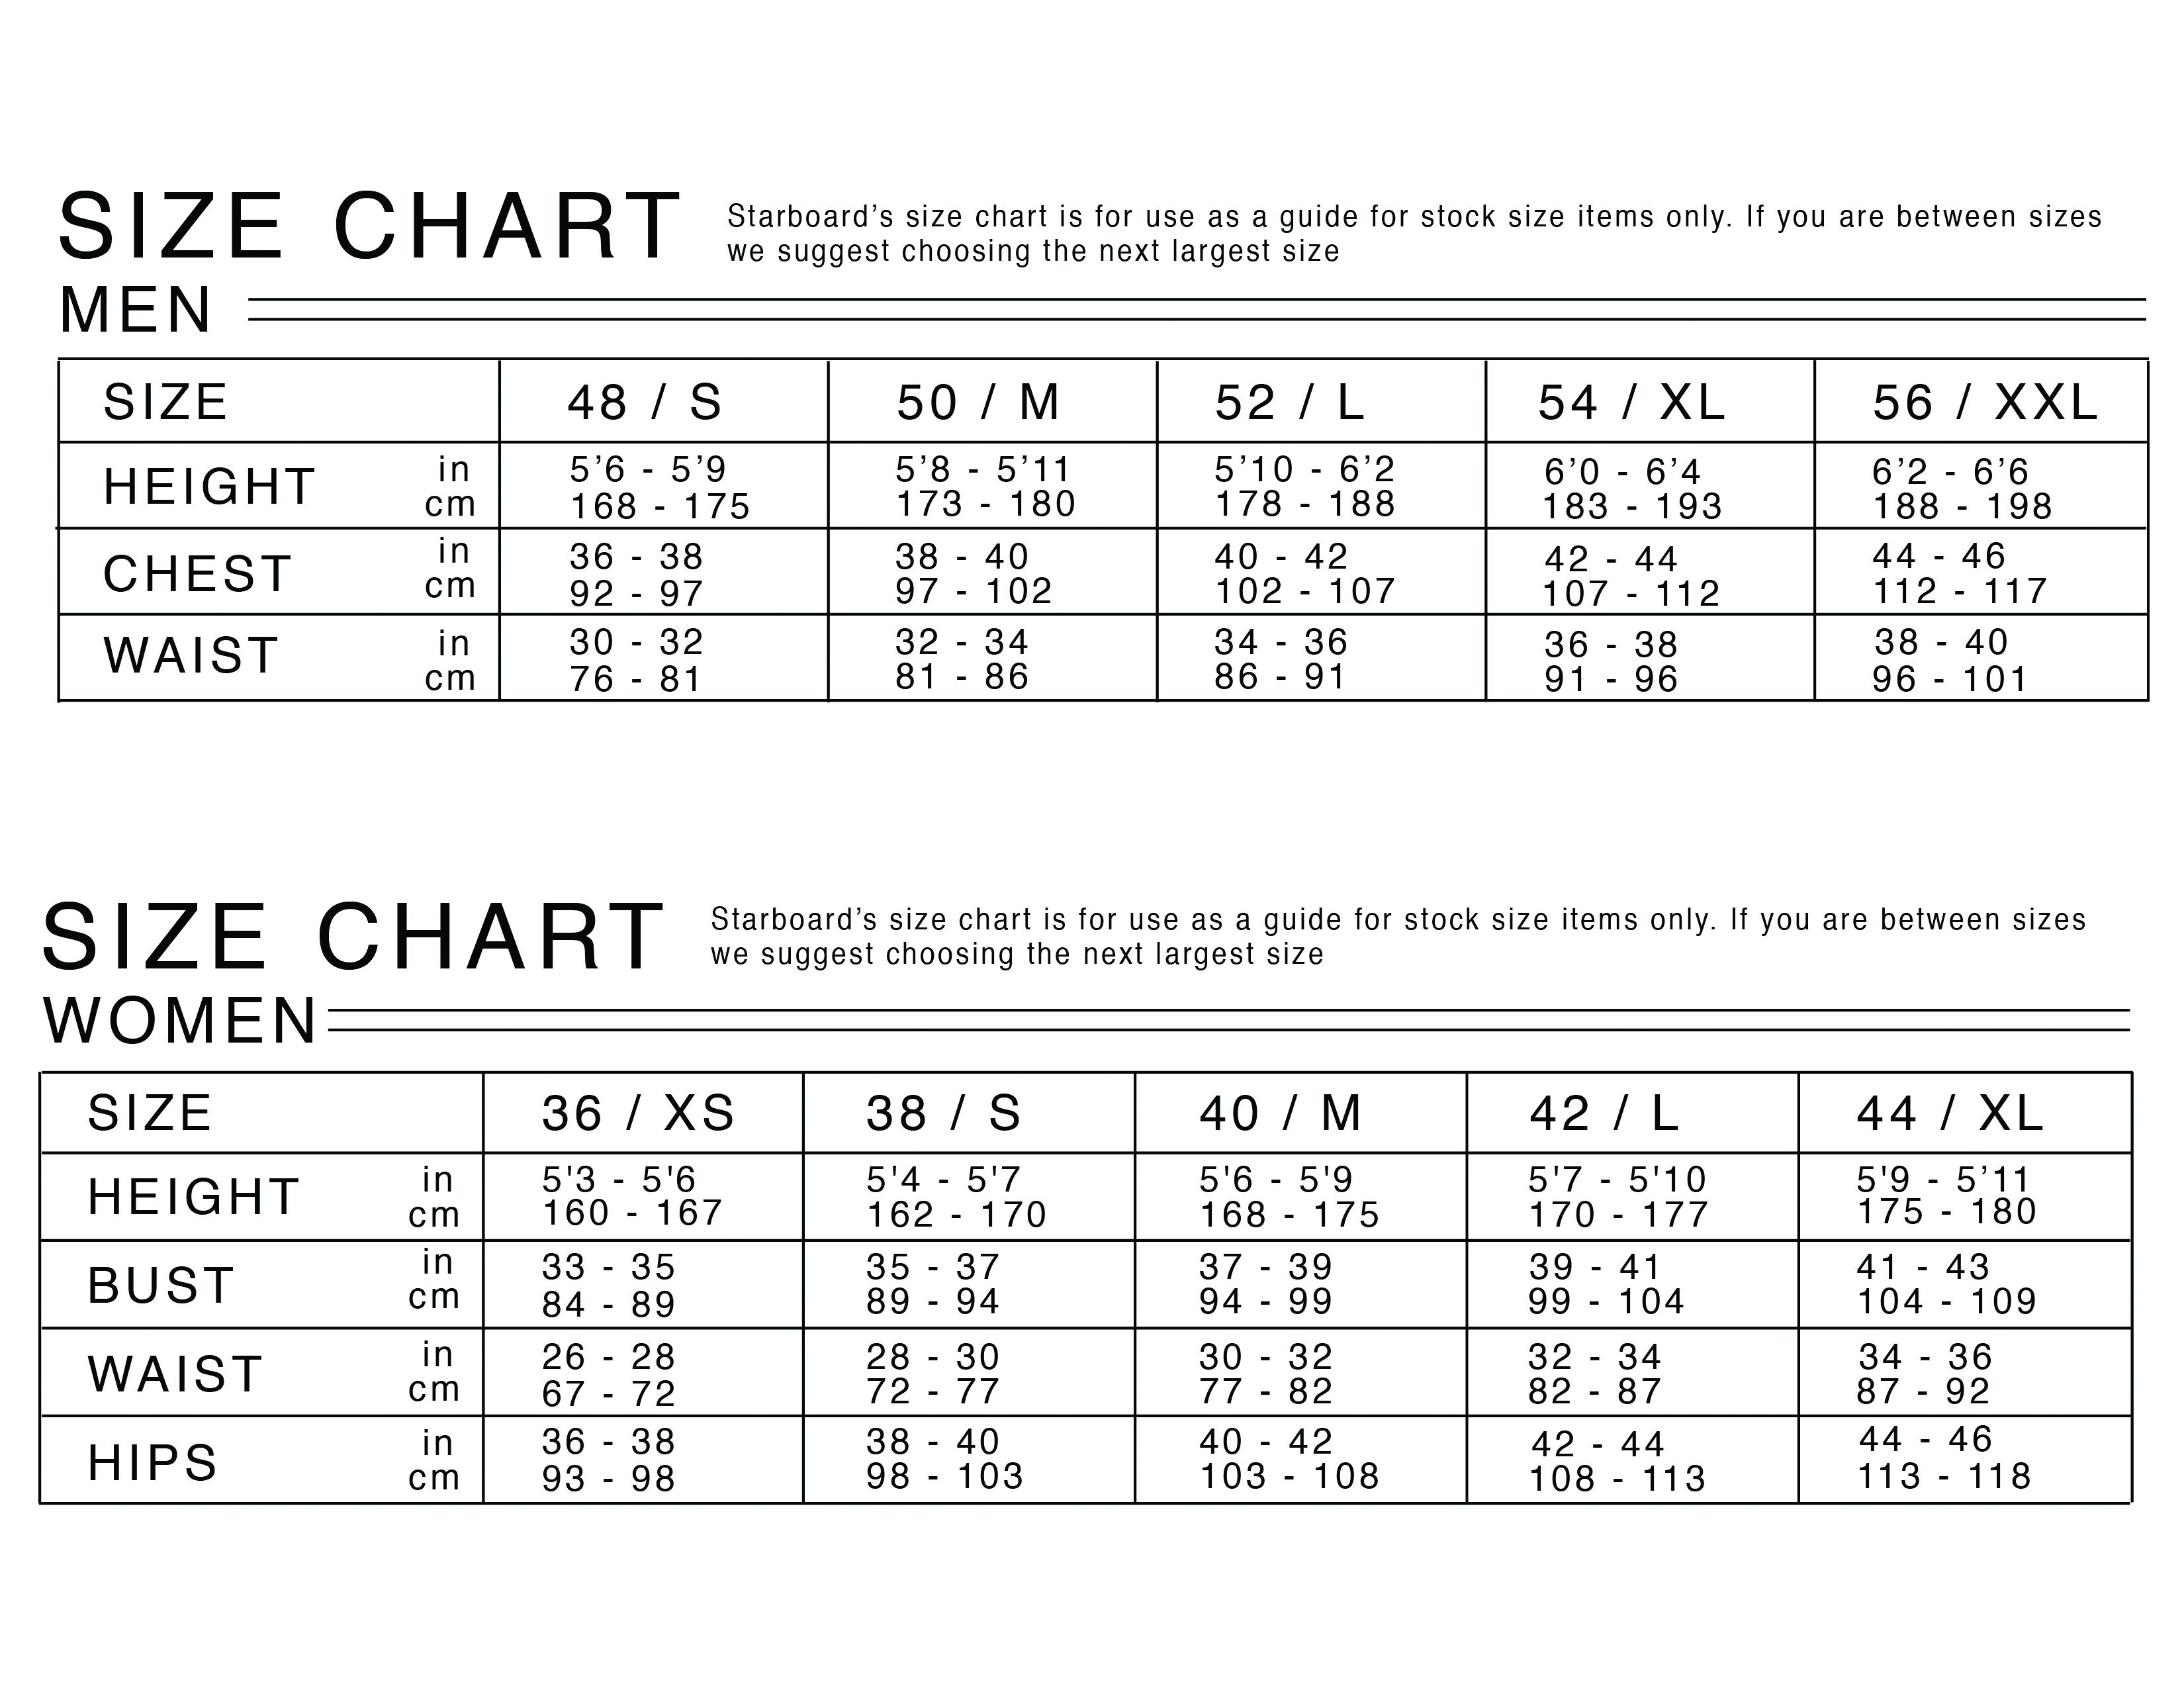 STB_SUP_Suit_Size Chart